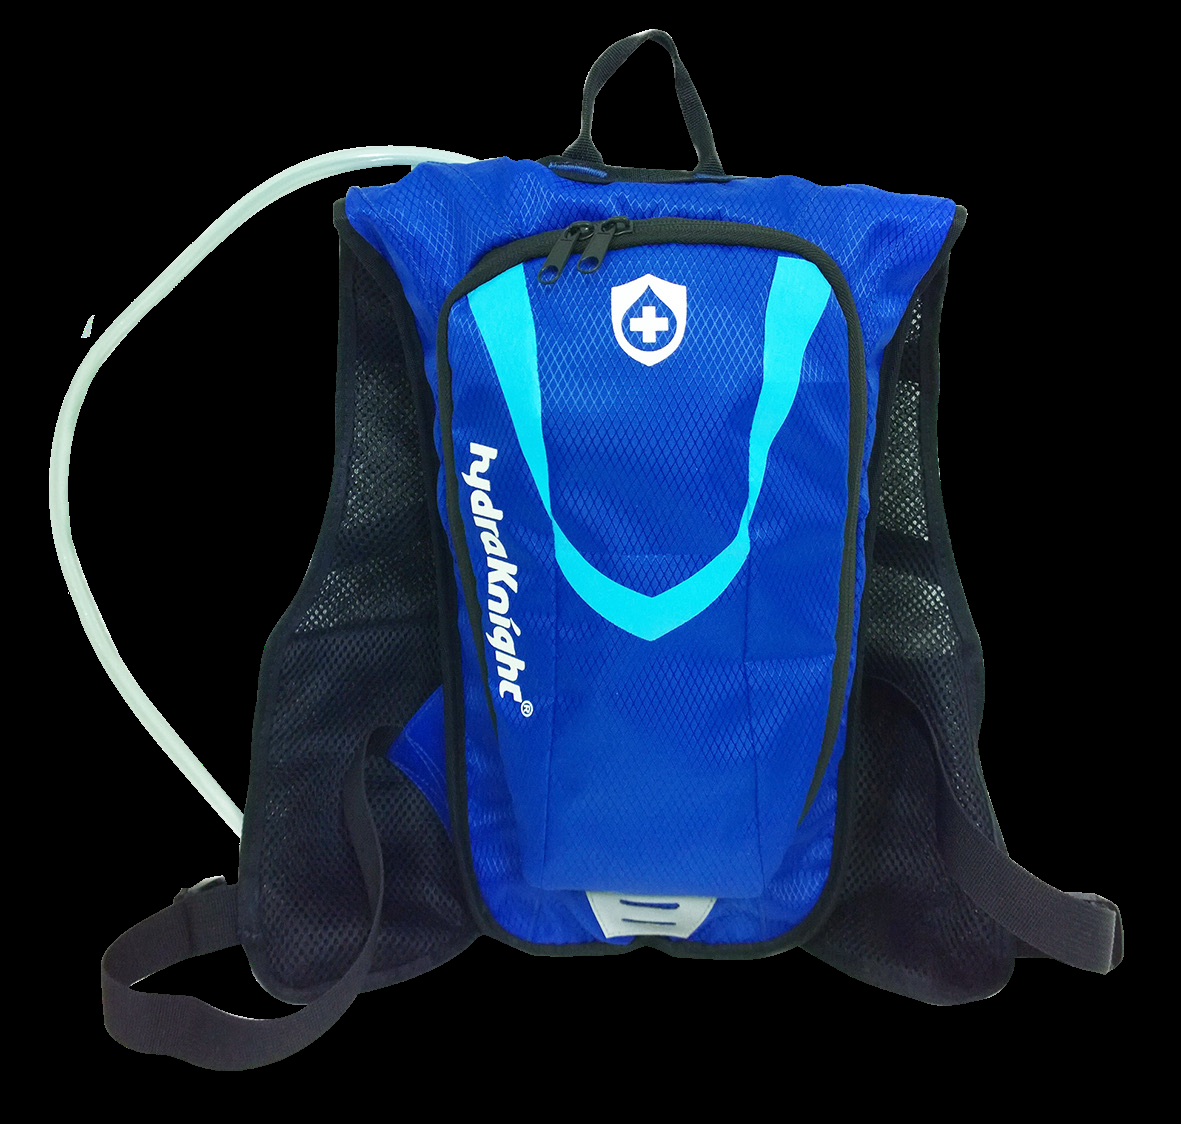 輕型水袋背包Light weight running backpack